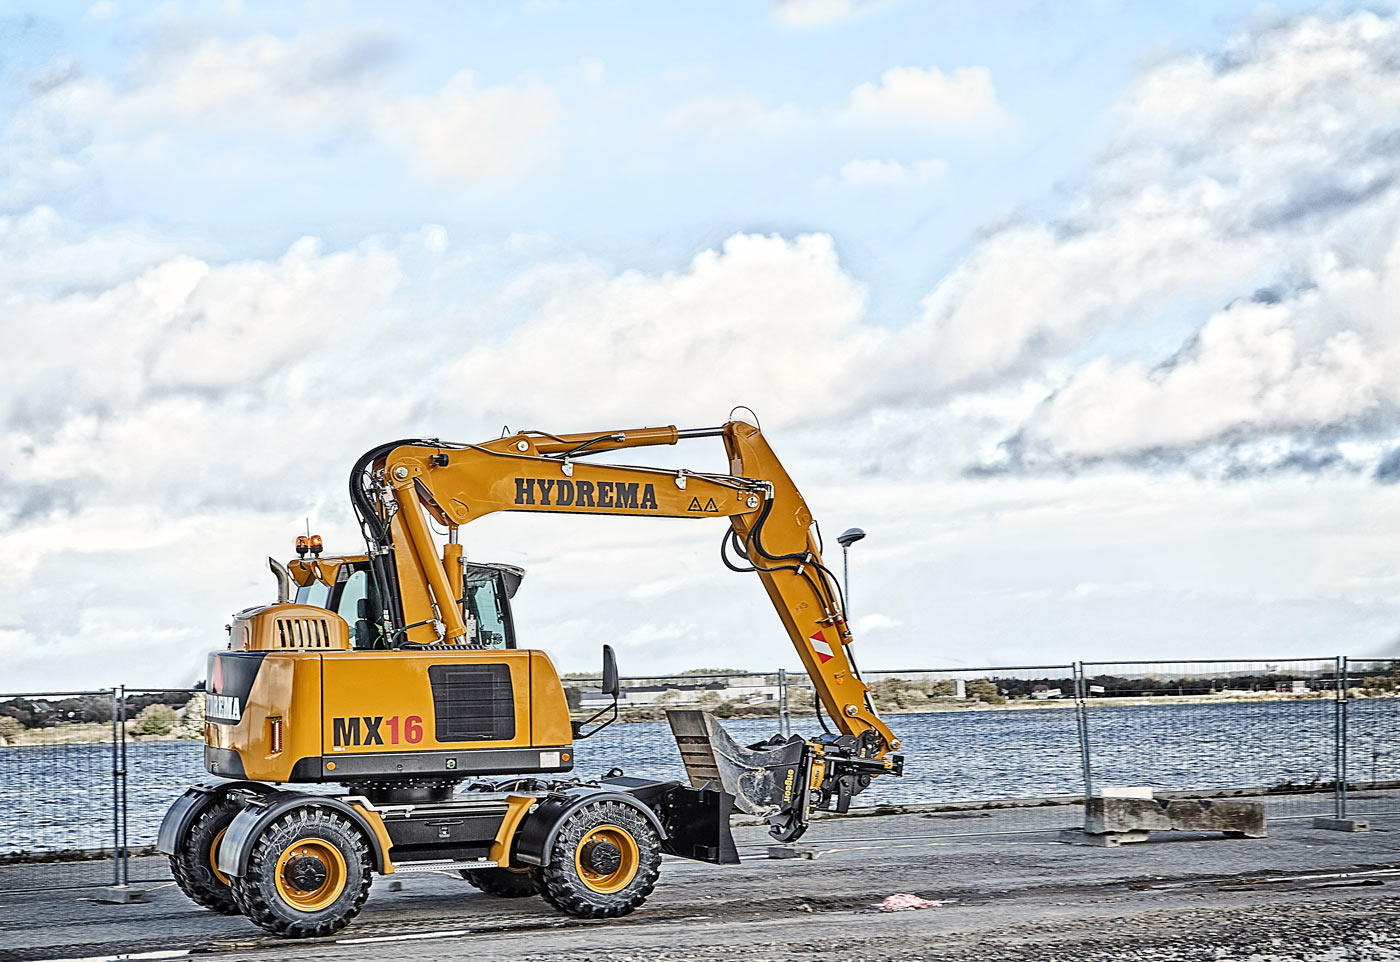 City excavators that set the standard!